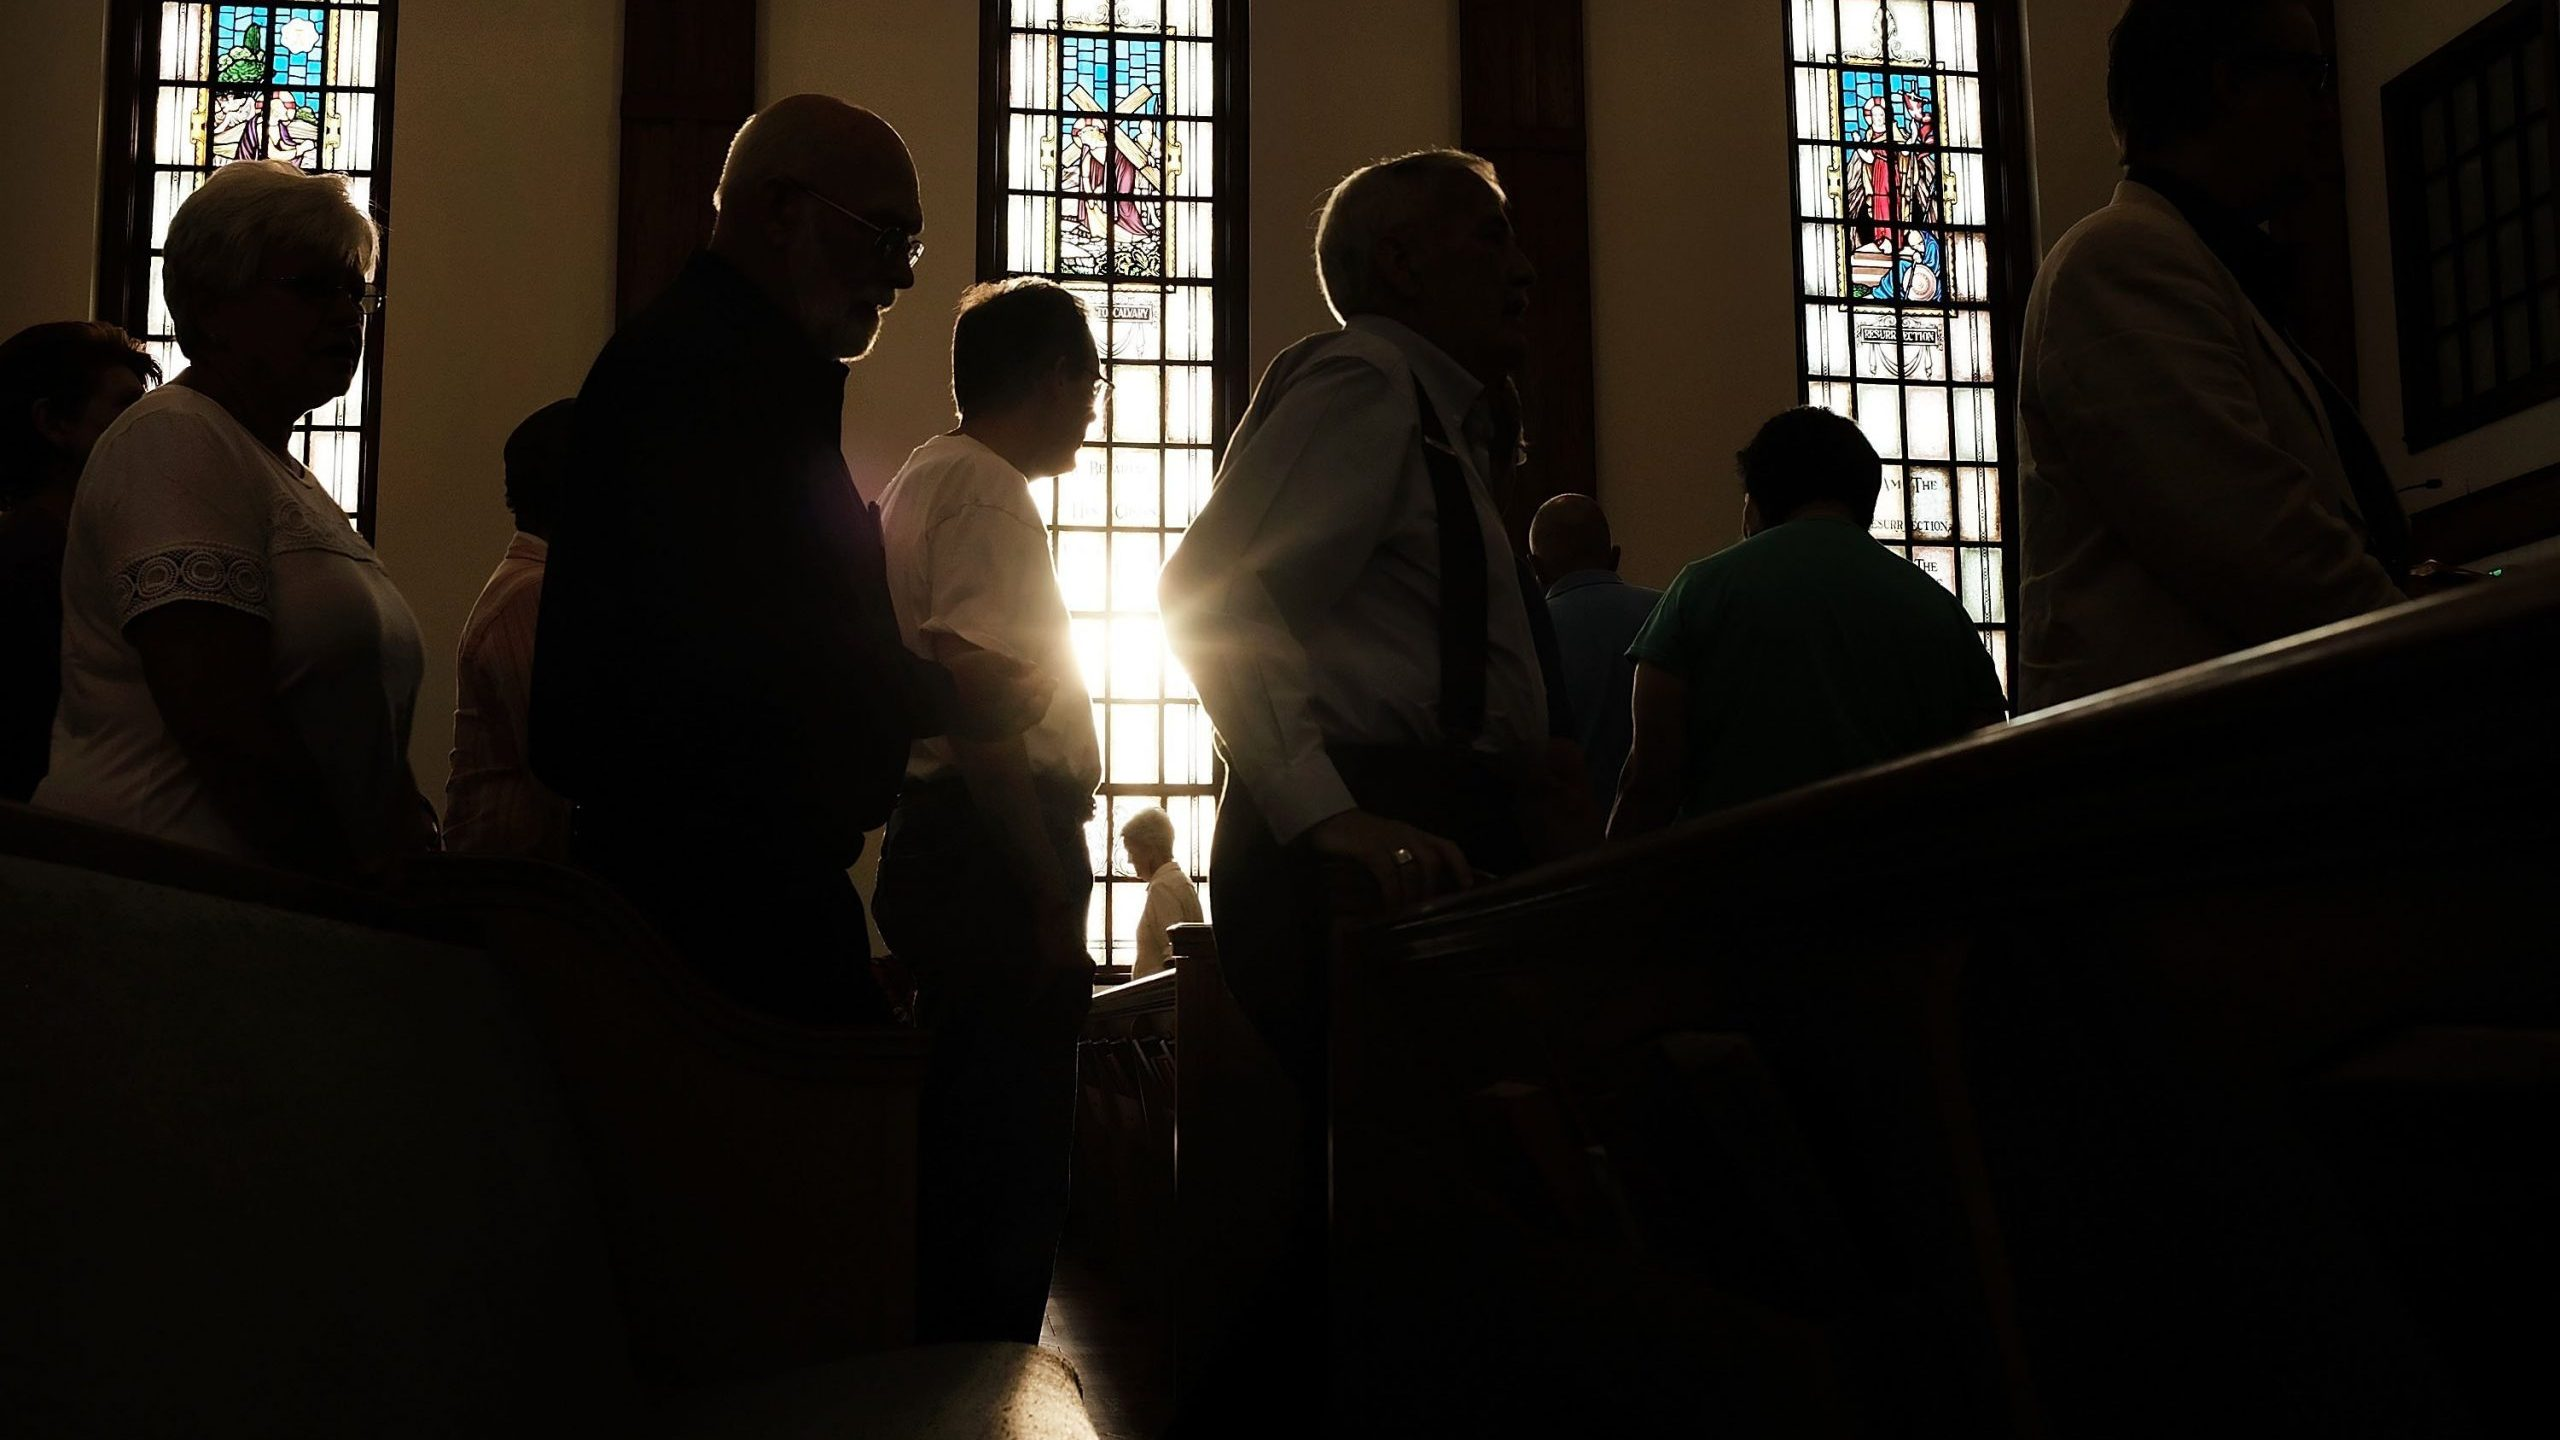 Churchgoers are seen in this undated file photo. (Credit: Spencer Platt/Getty Images)